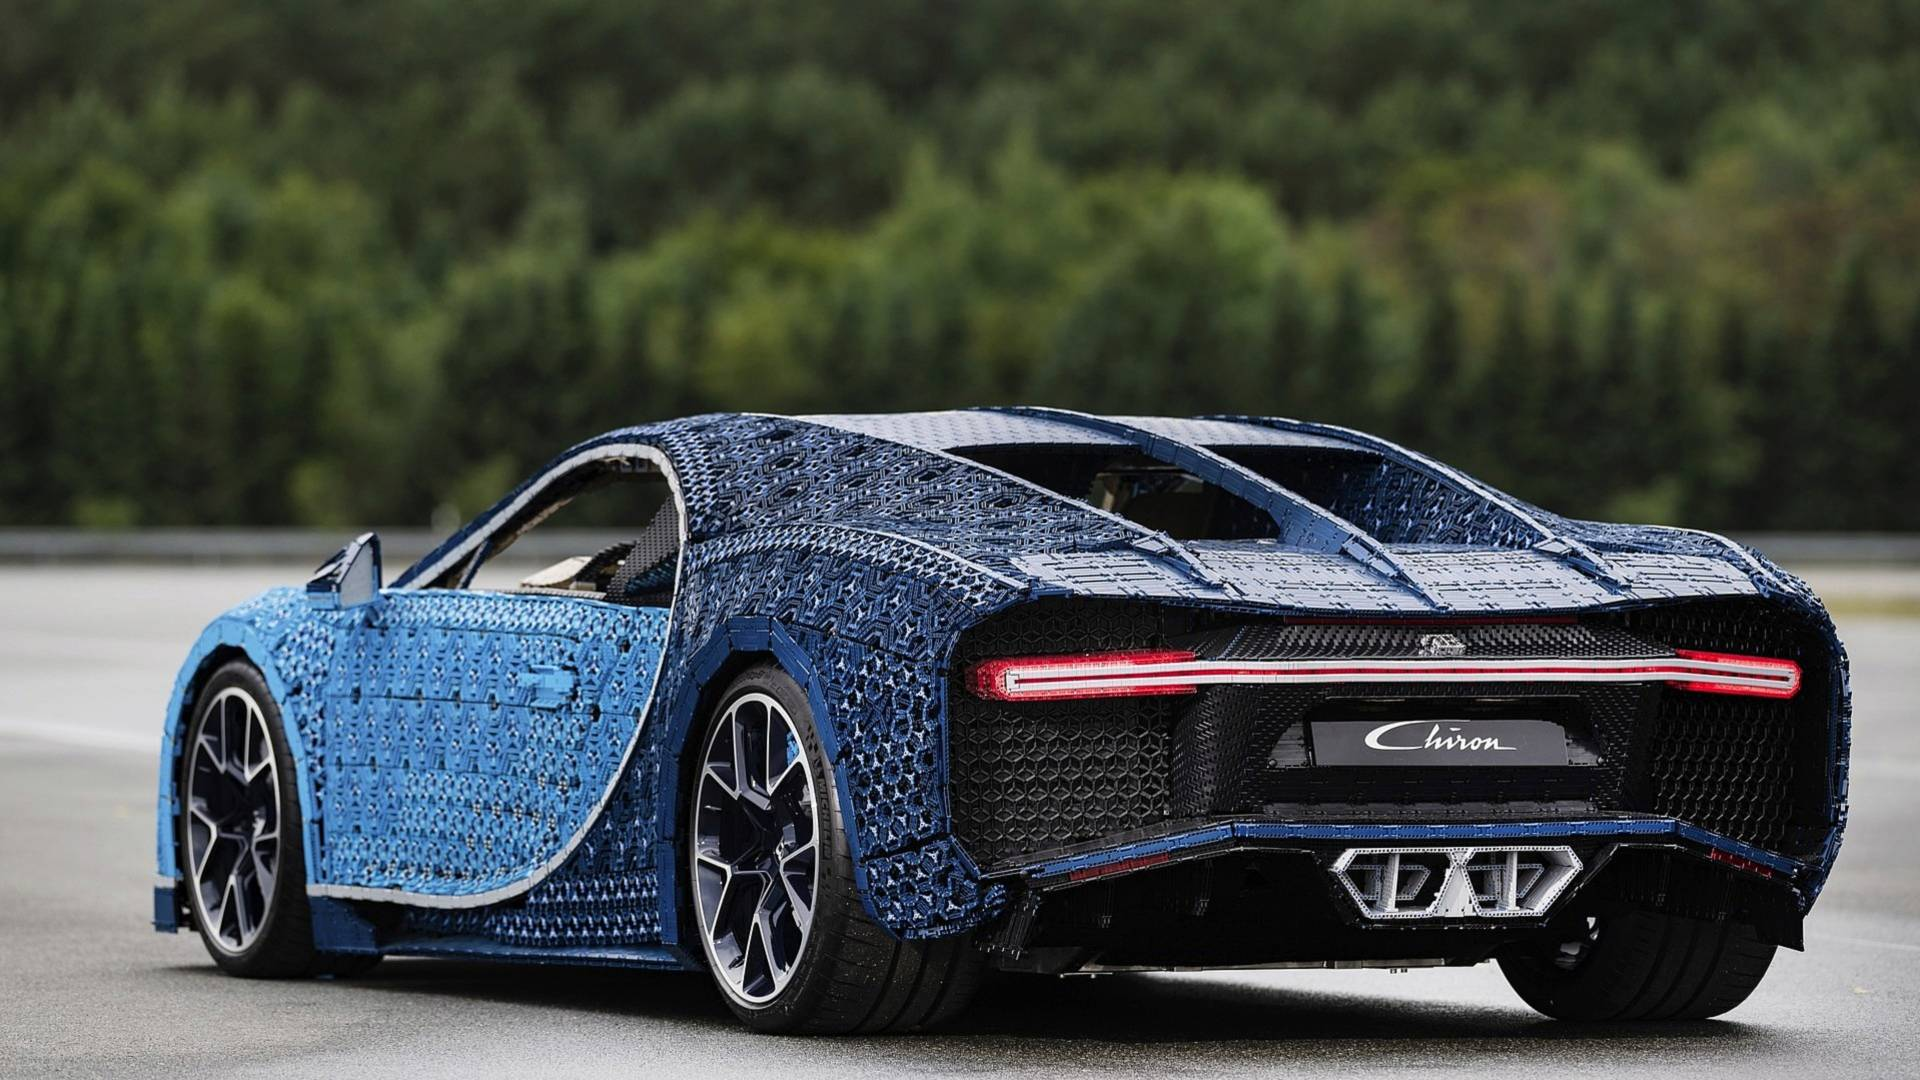 11 Bugatti Chiron Lego Detailed On Video Like A Real Car